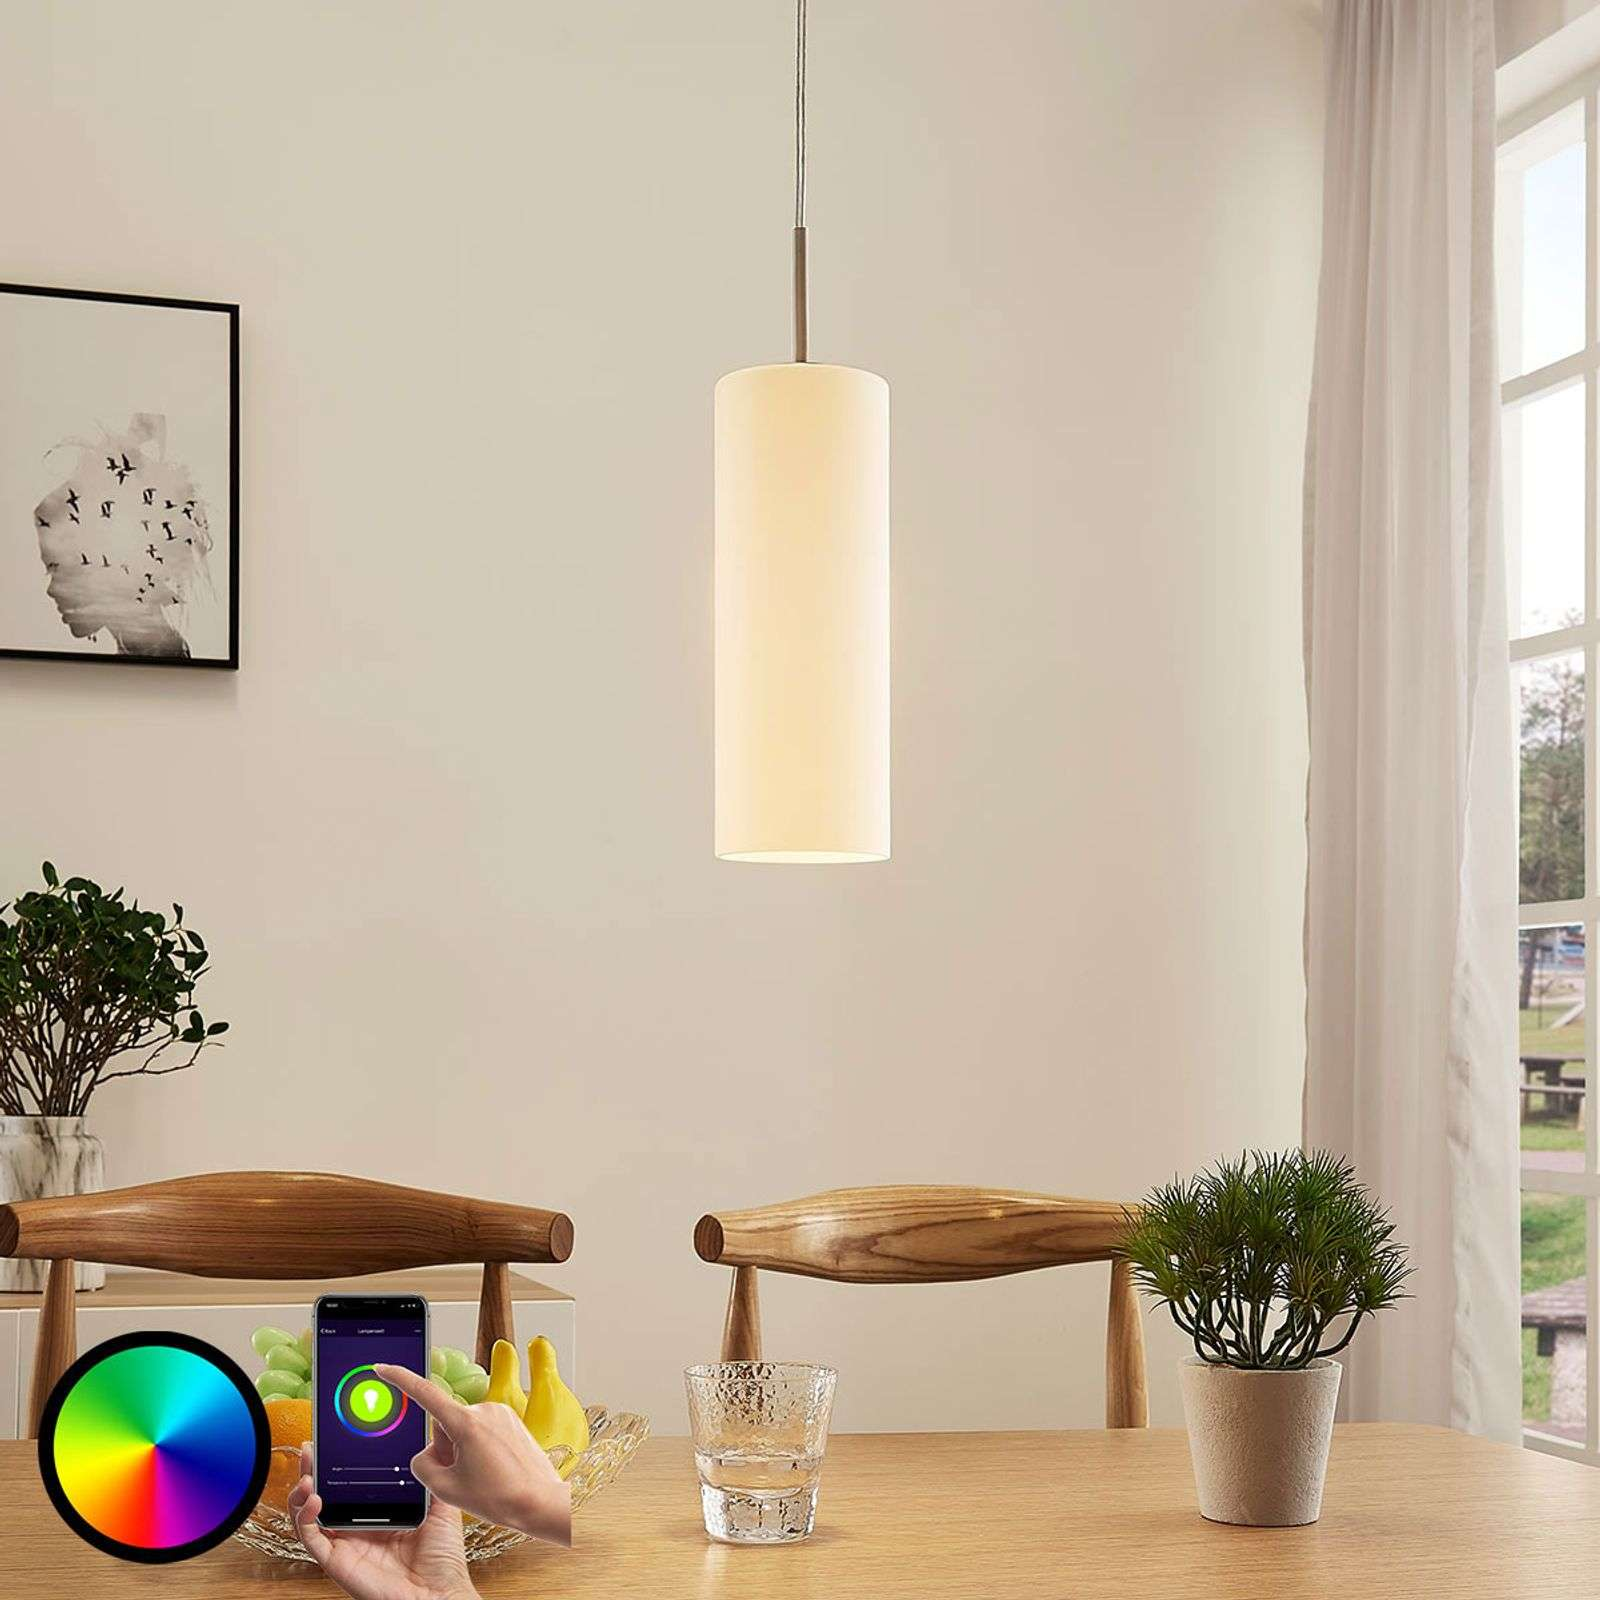 Lindby Smart LED hanglamp Felice met RGB-lamp